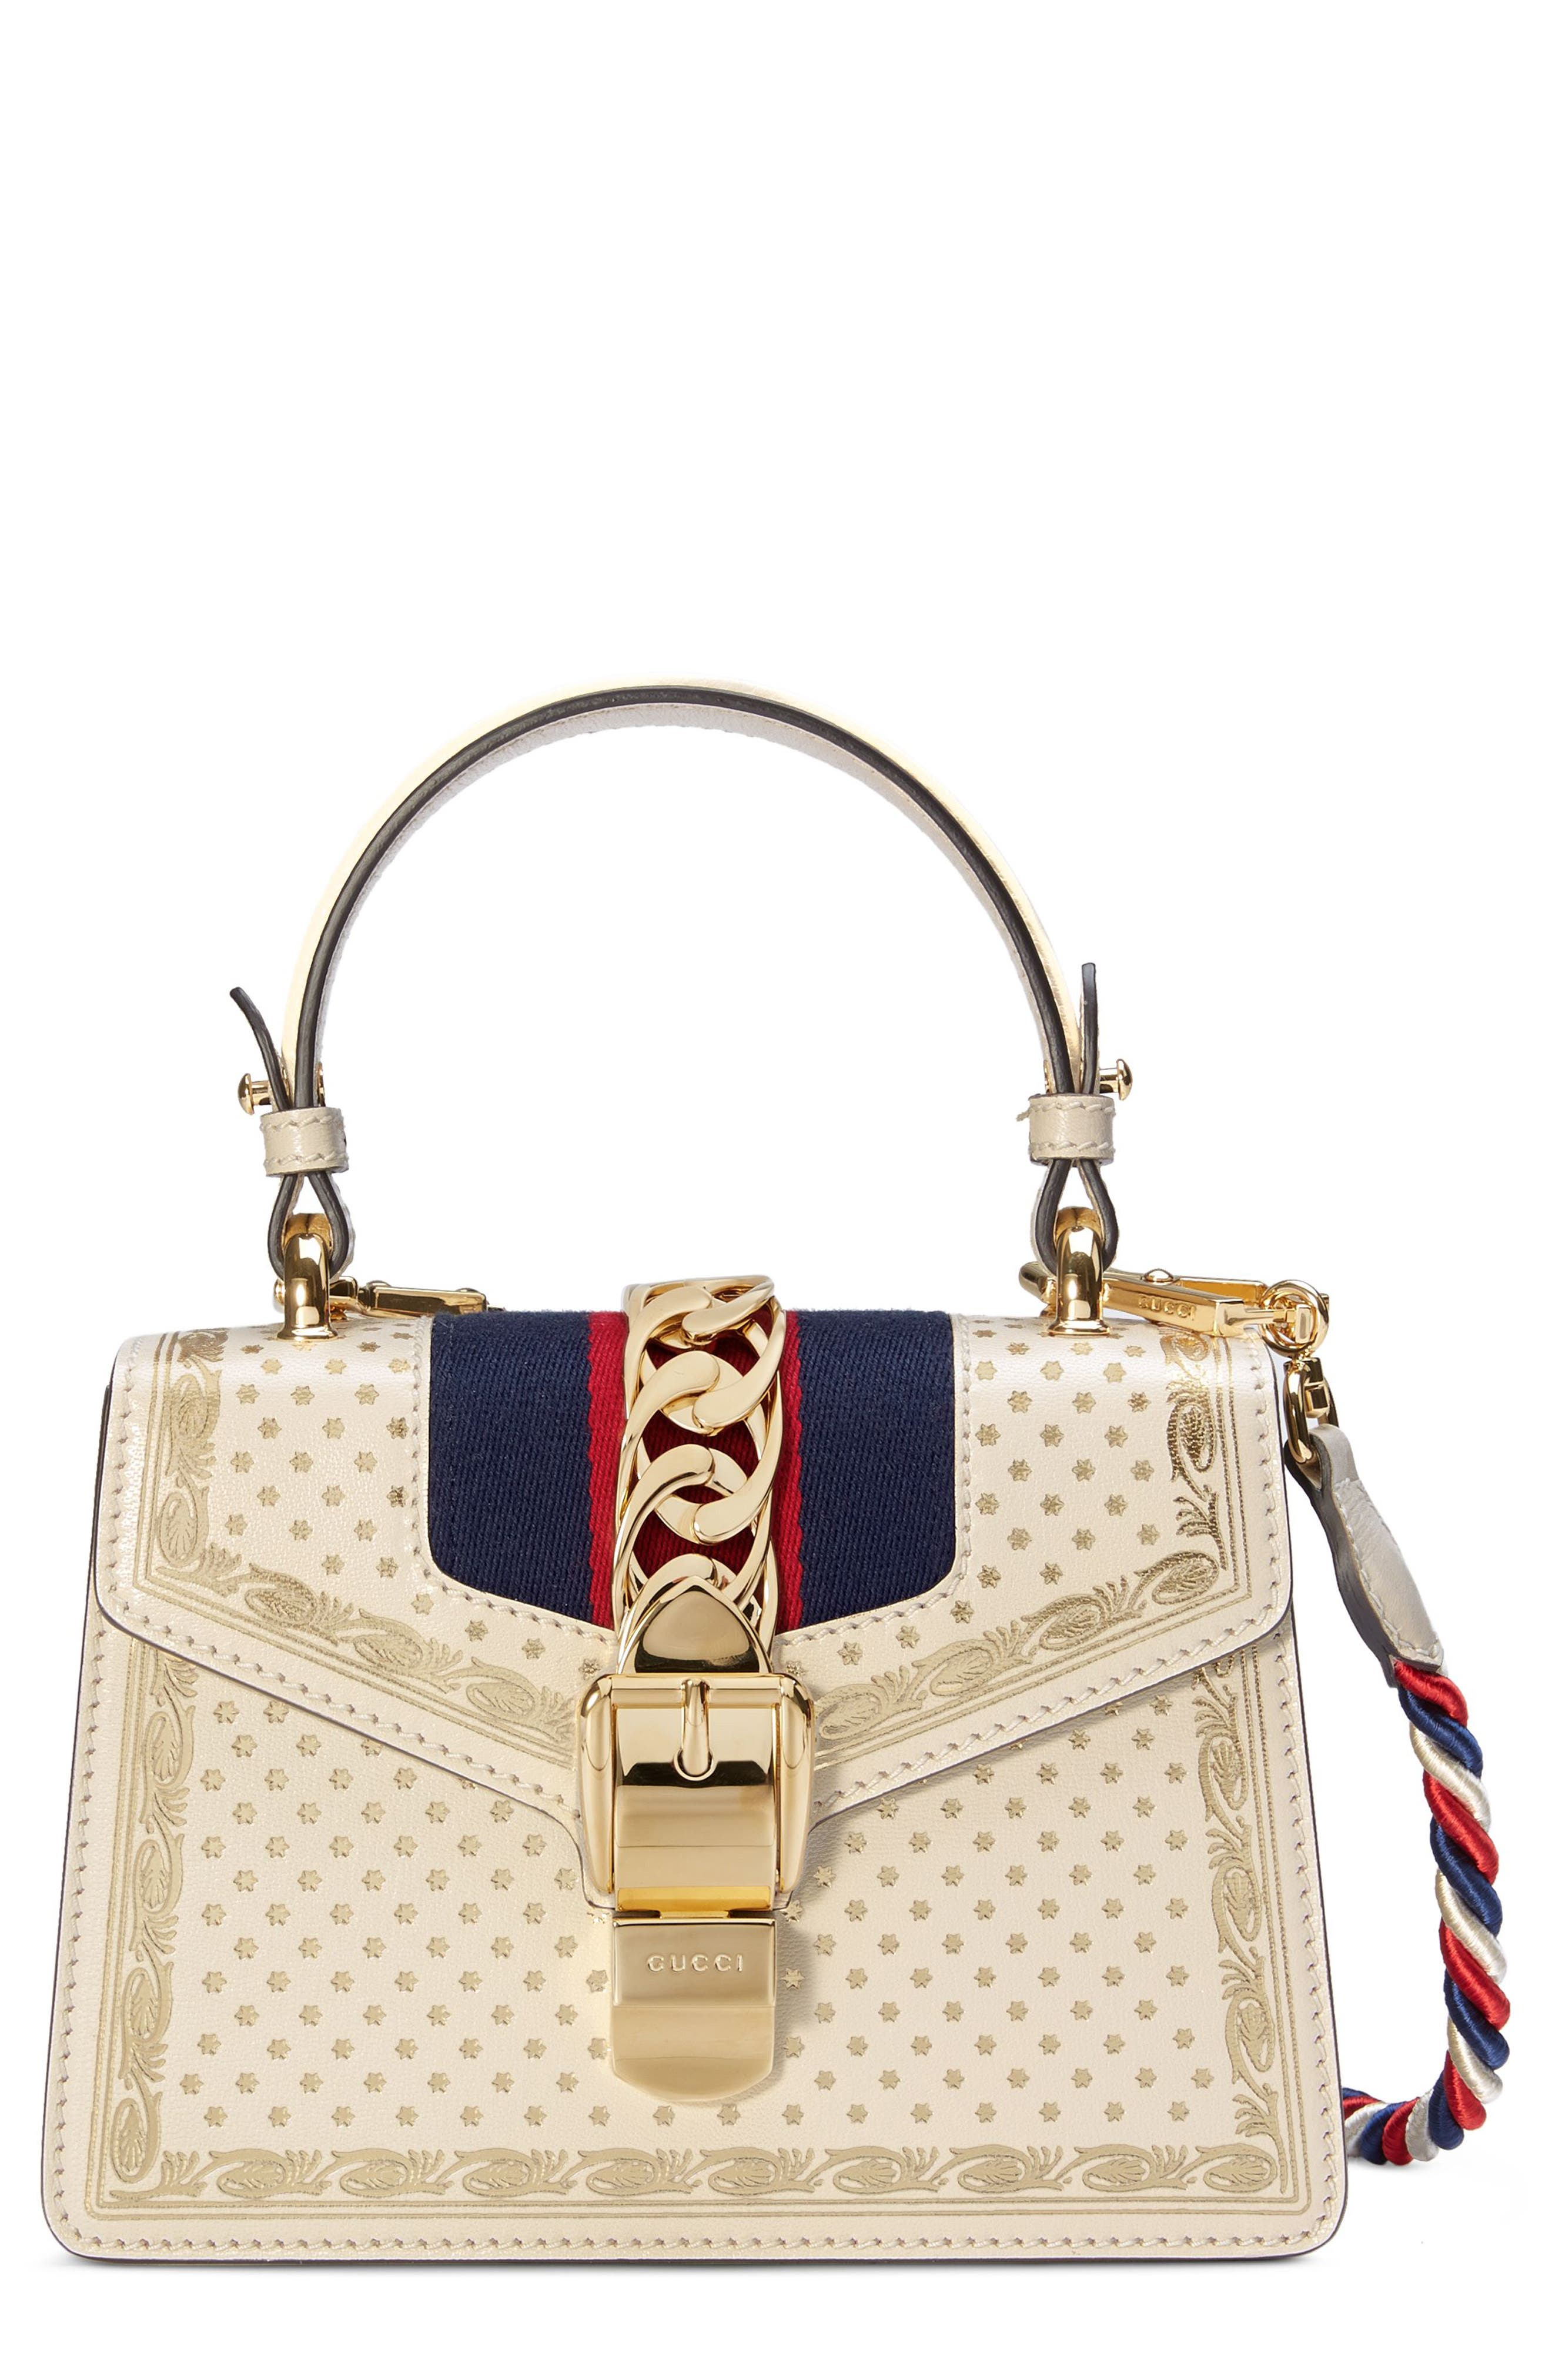 Mini Sylvie Moon & Stars Leather Shoulder Bag,                             Main thumbnail 1, color,                             Mystic White/ Oro/ Blue Red